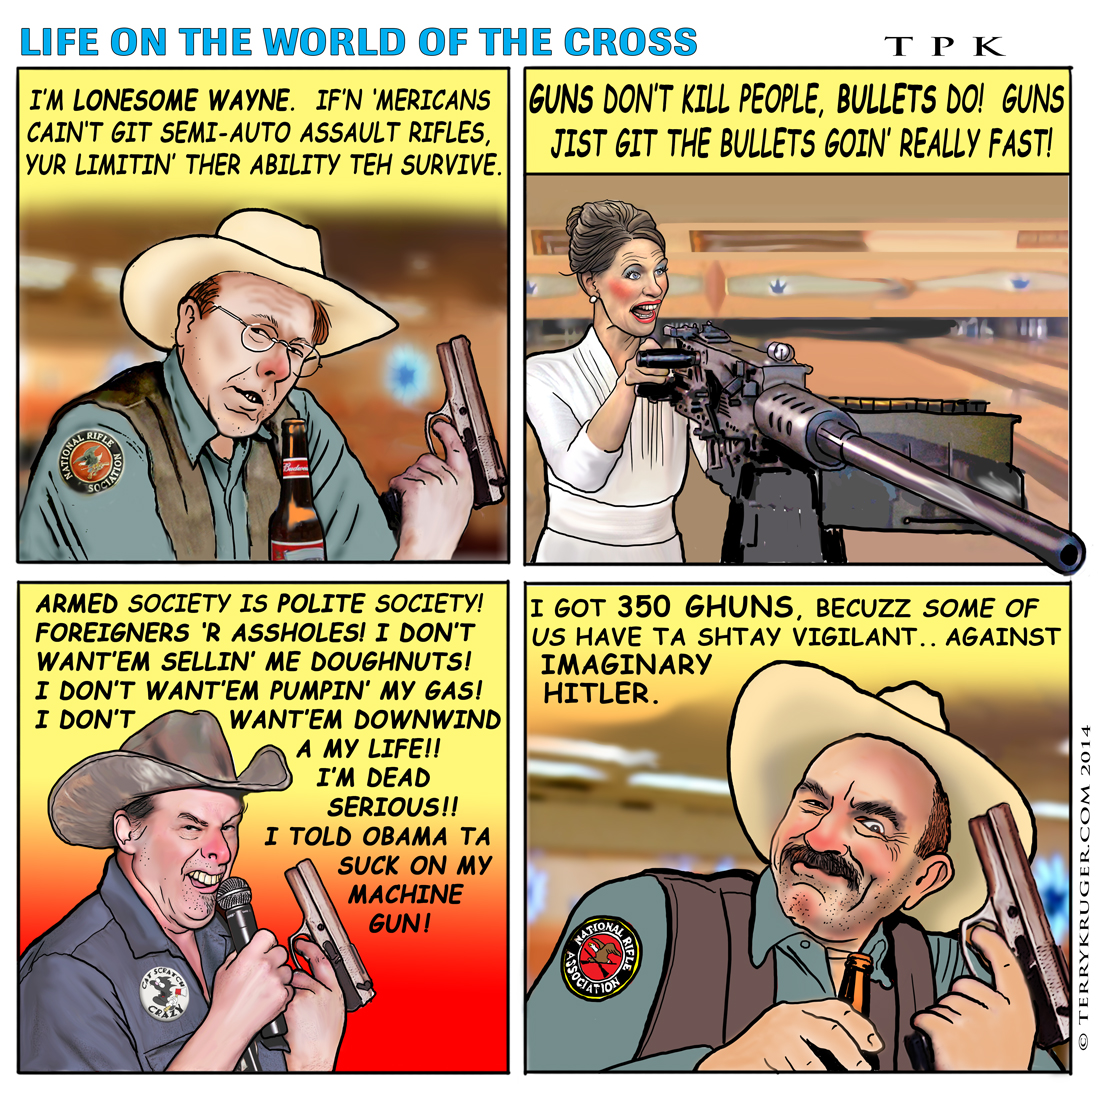 SPECIAL STUPID: GUN NUT EDITION